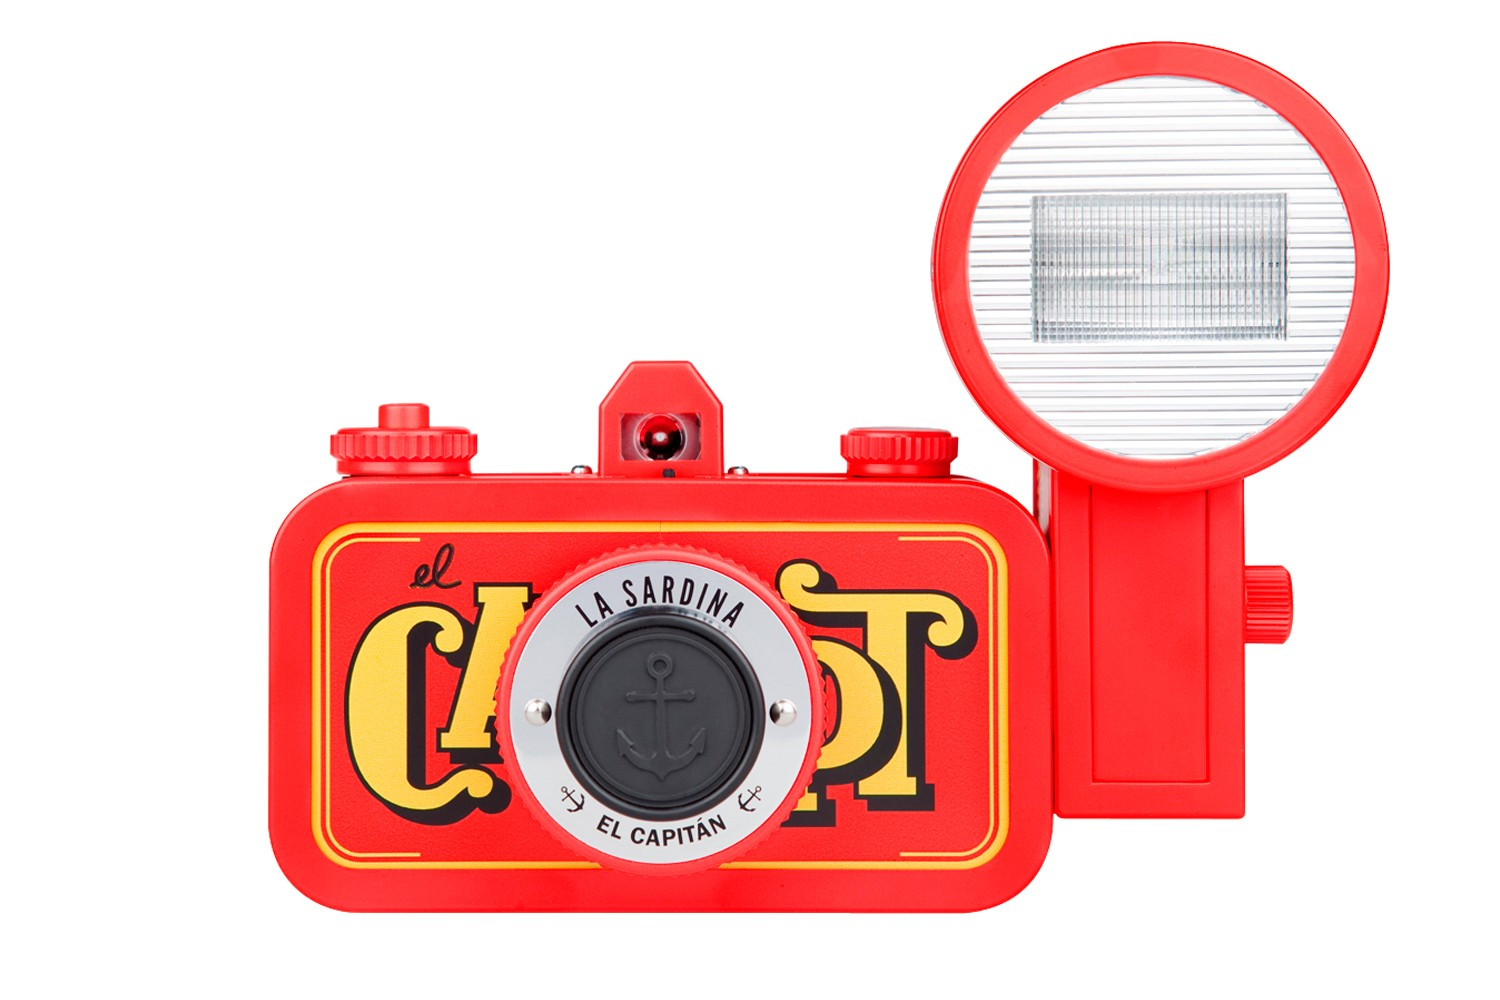 La Sardina Camera and Flash (El Capitan Edition)